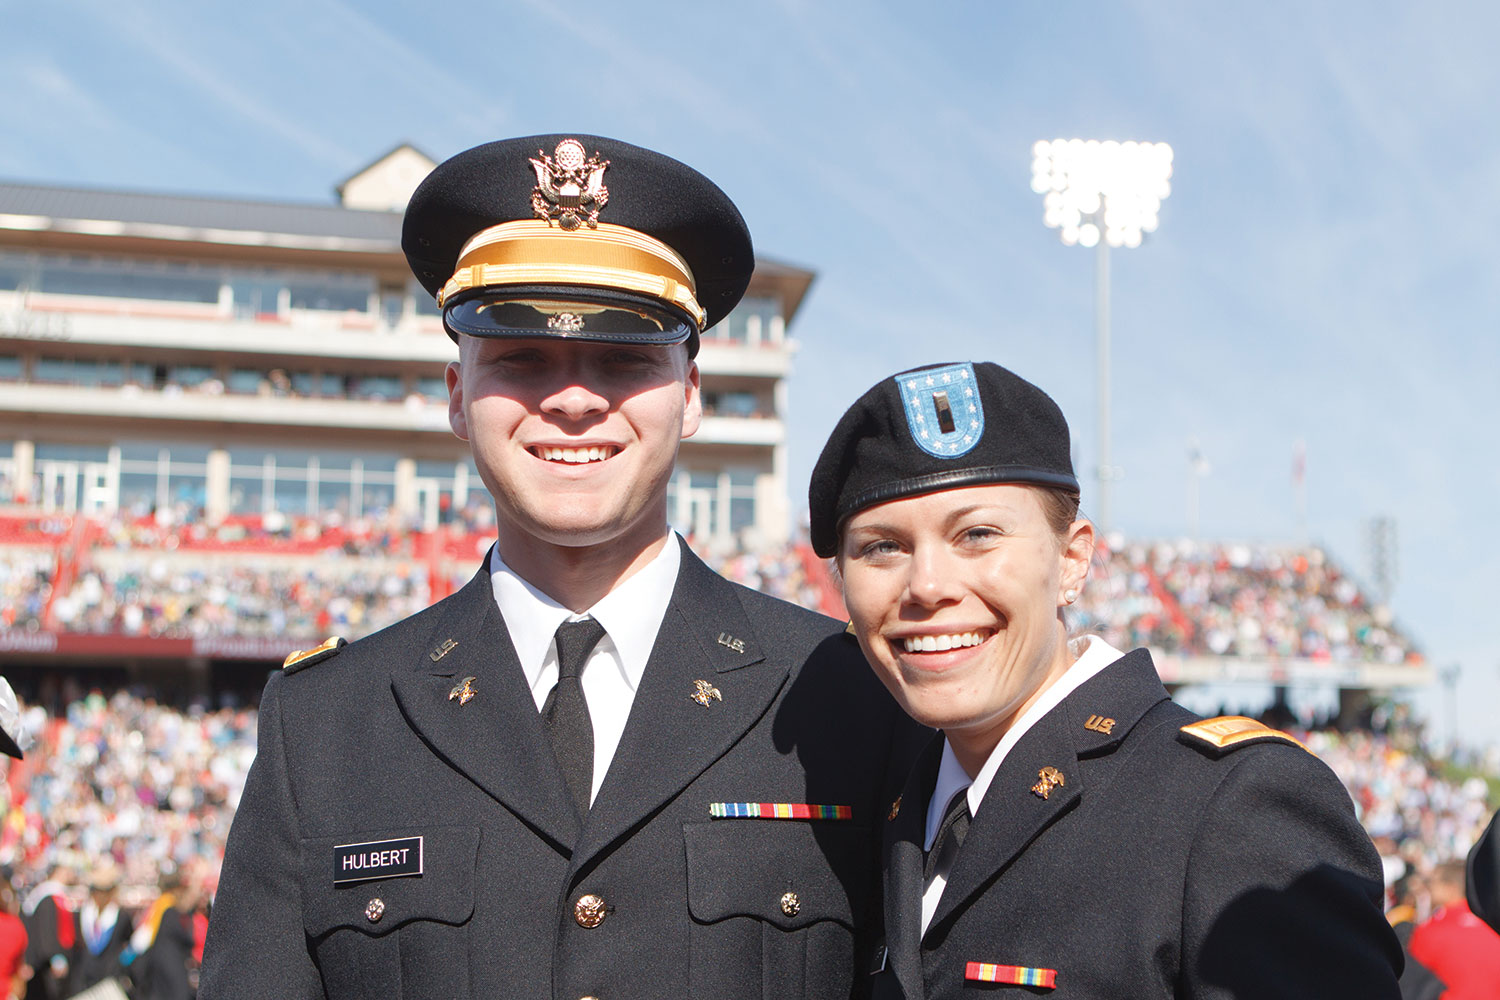 Two military graduates celebrate Commencement.